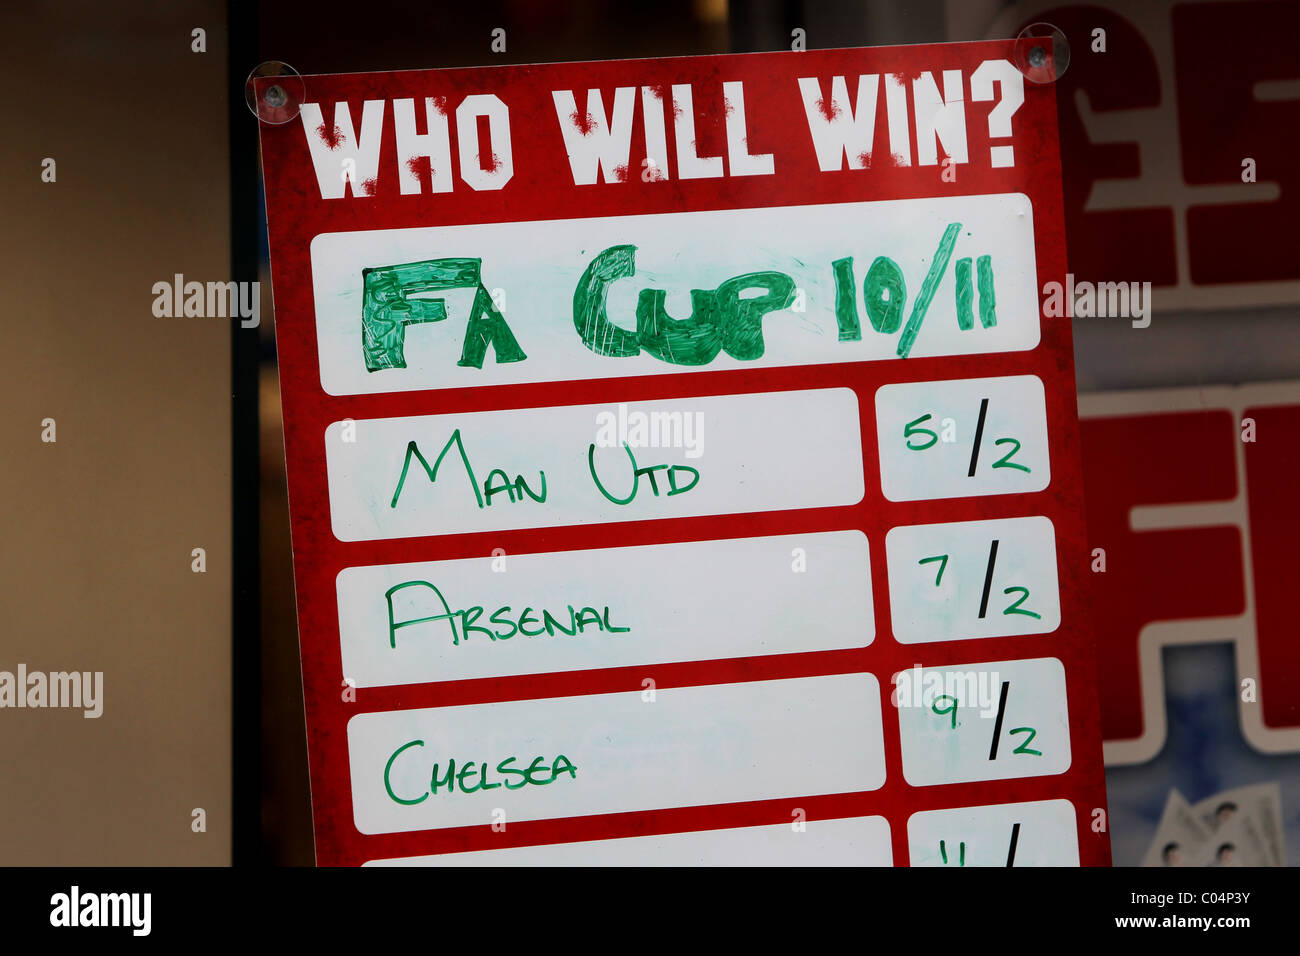 Betting shop window display promoting the odds on football teams to win the FA Cup in Brighton, East Sussex. - Stock Image